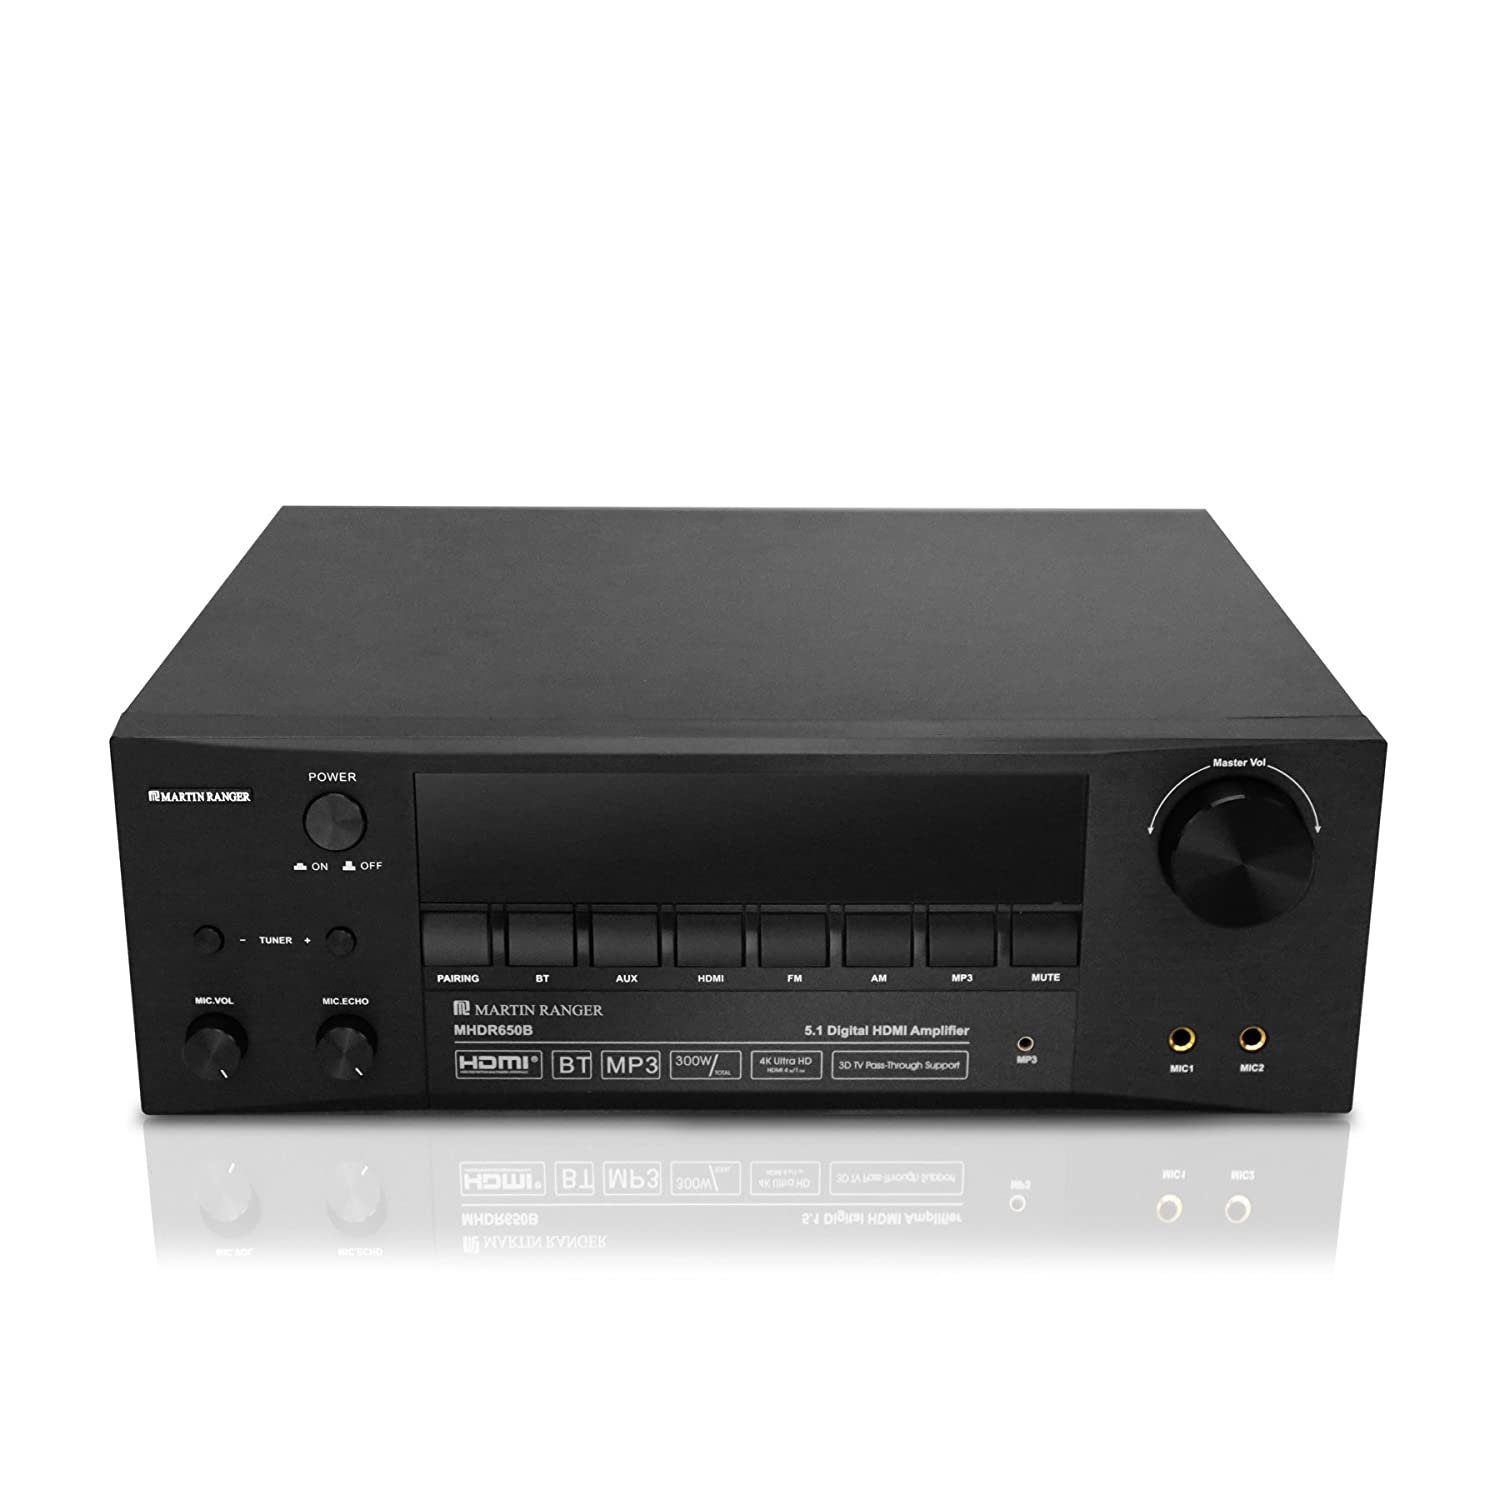 HDMI (2160P/4K) ARC 5.1 Channel Built-in Bluetooth V4.0 &300 Watts Digital Amplifier with VFD Display